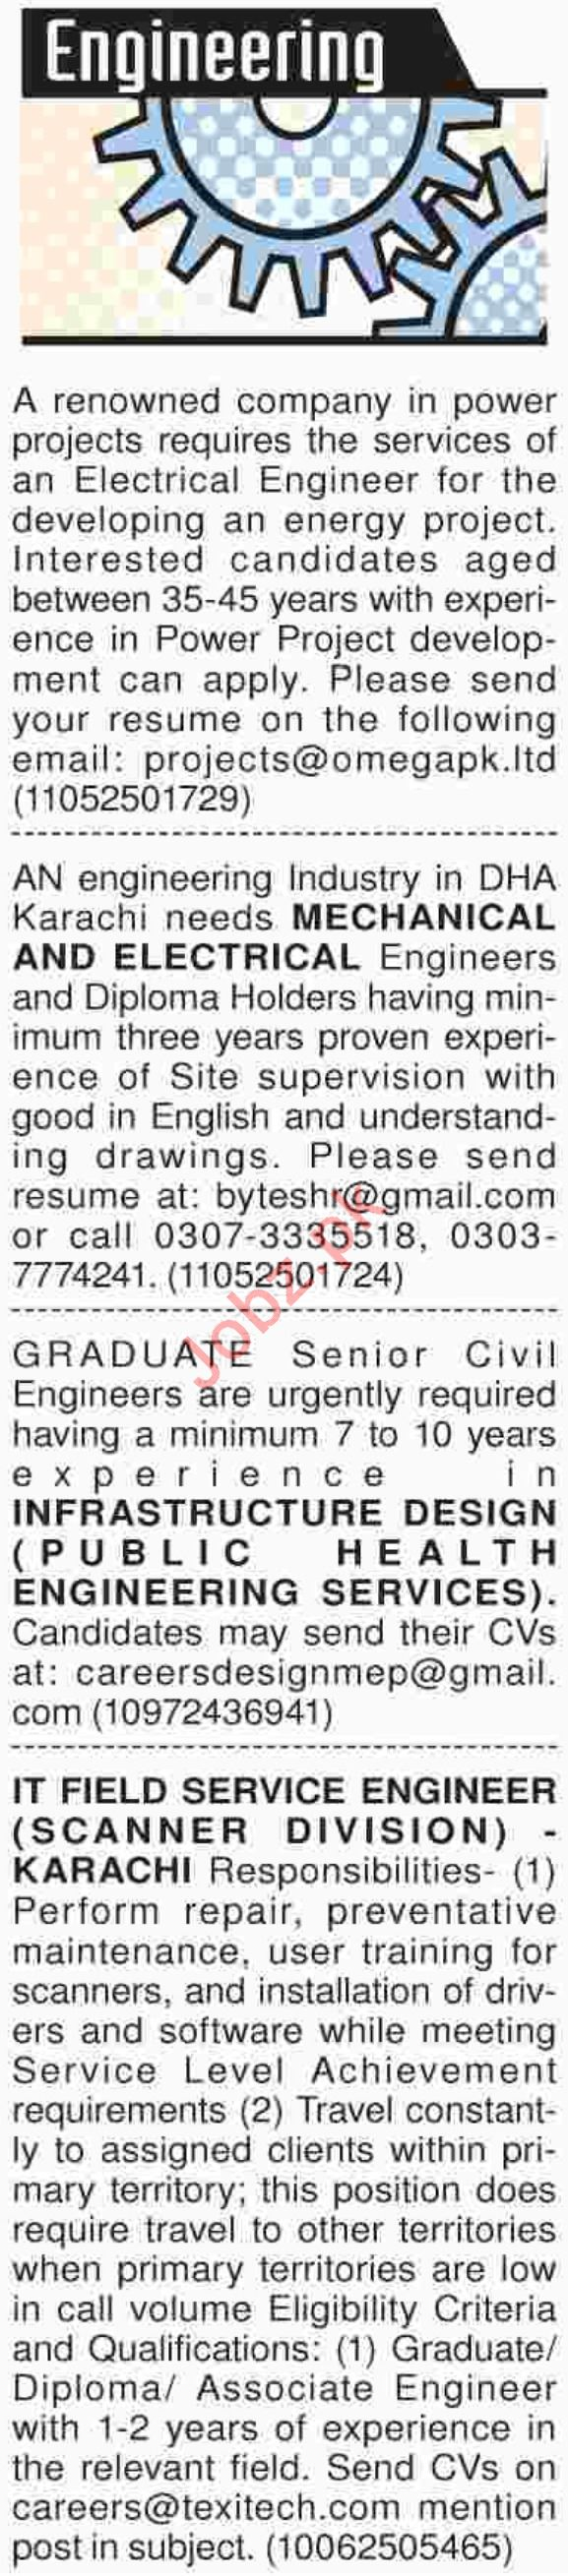 Dawn Sunday Classified Ads for Engineering Jobs